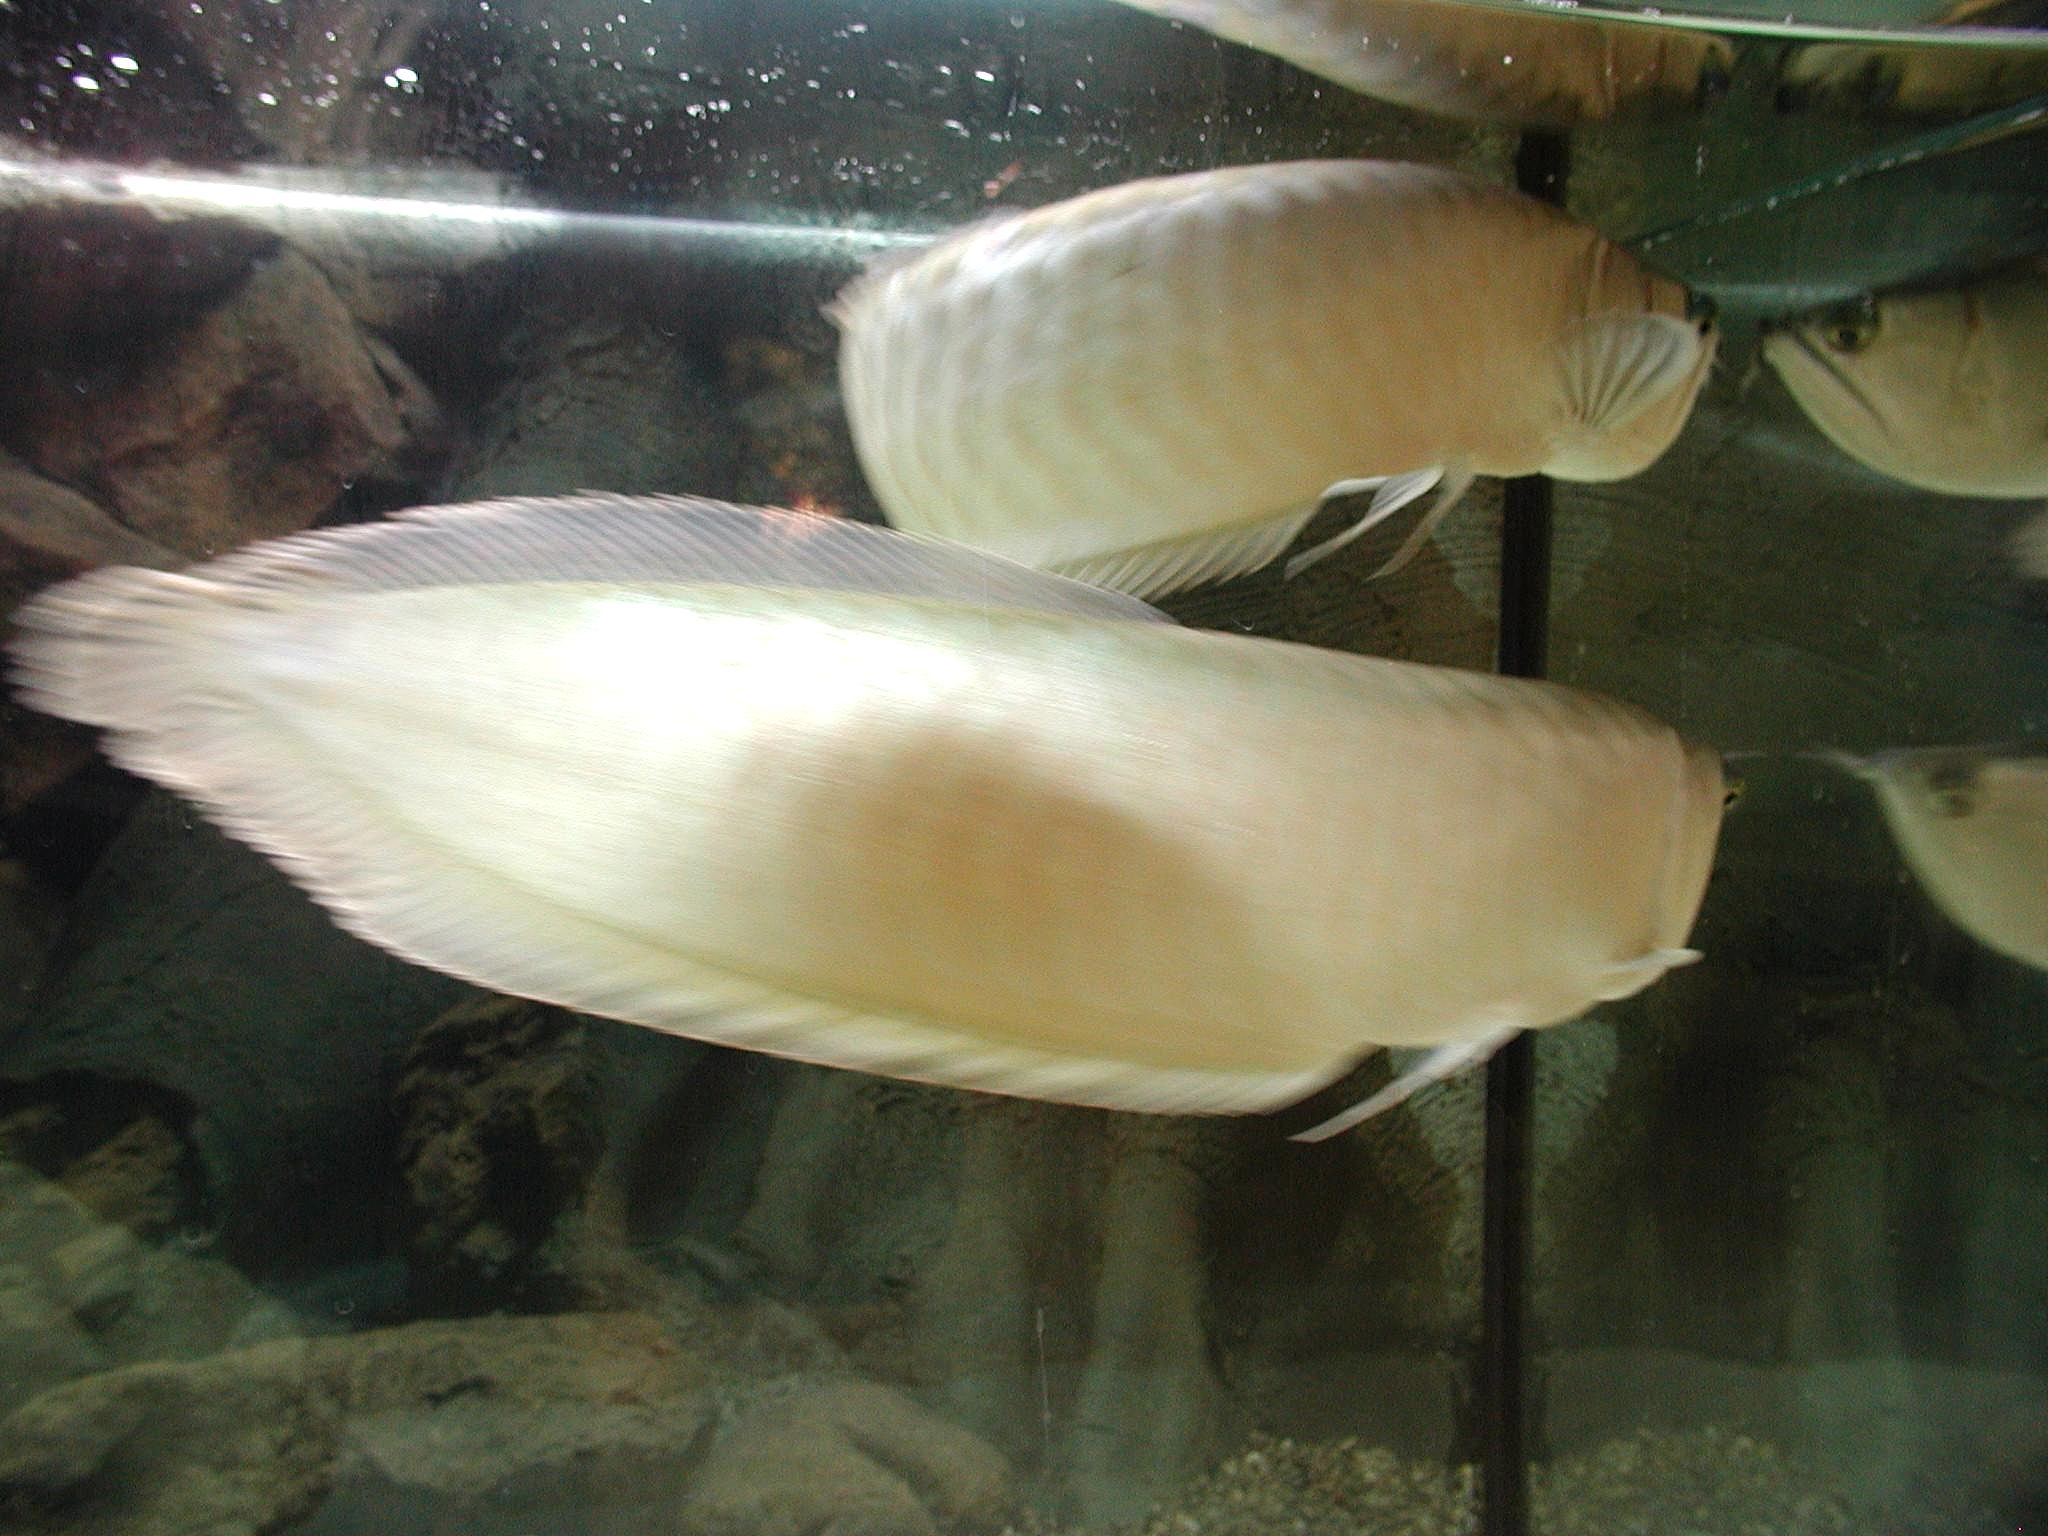 File:Aquarium fish white fish.jpg - Wikimedia Commons